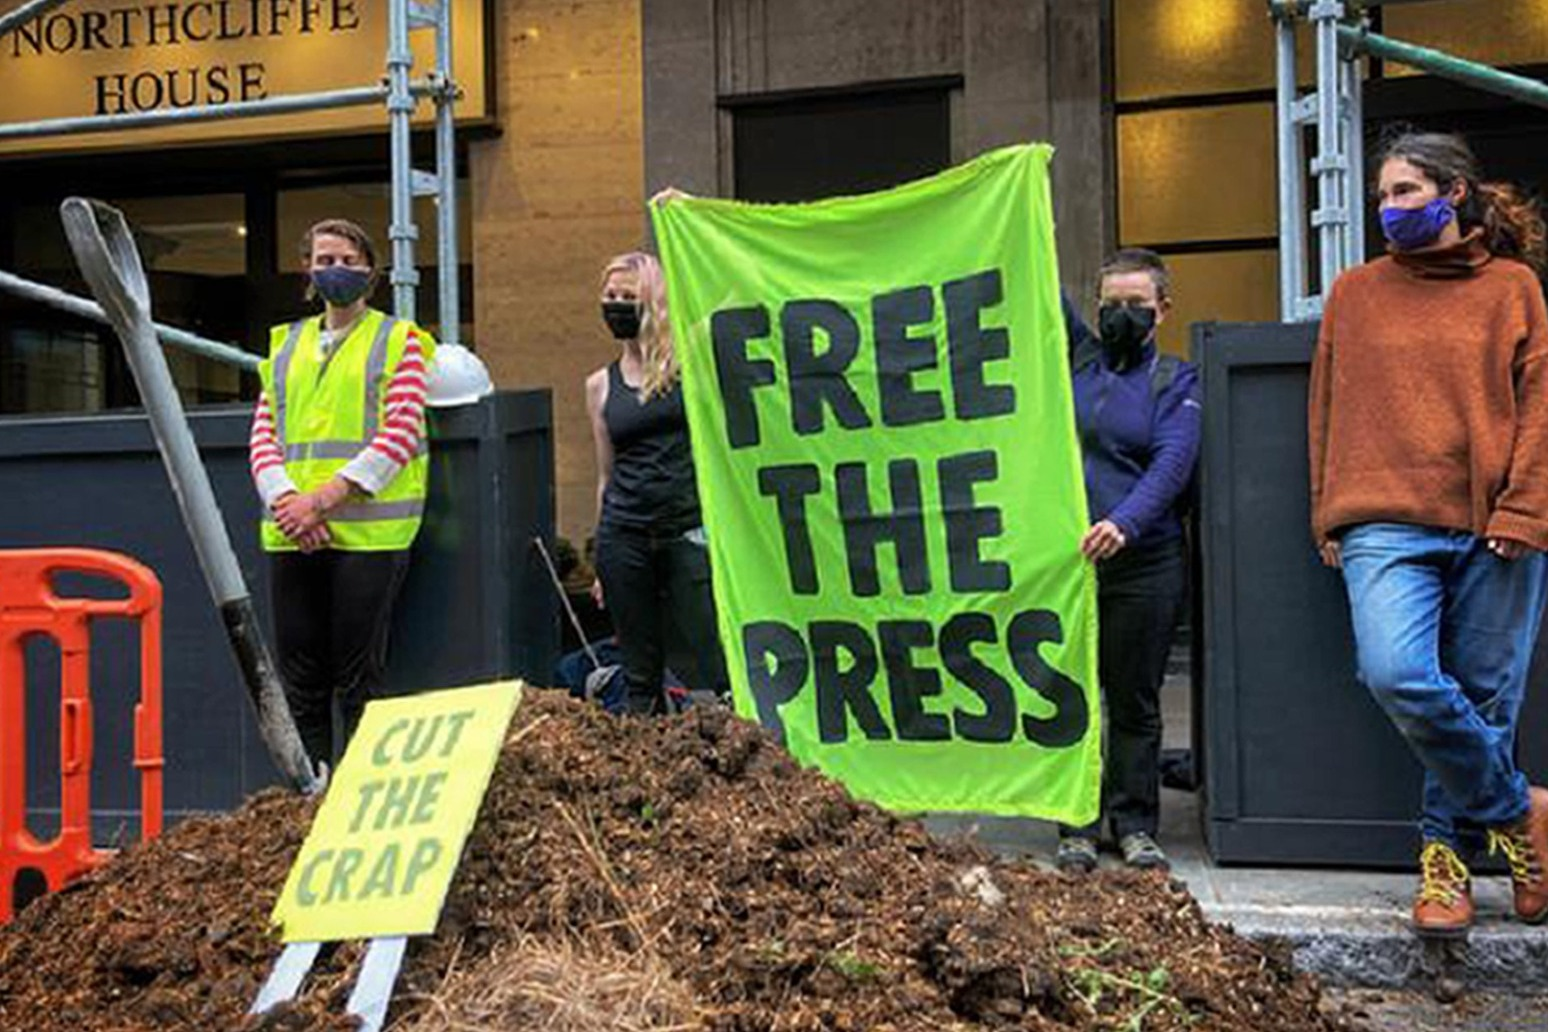 Protest outside a newspaper offices.